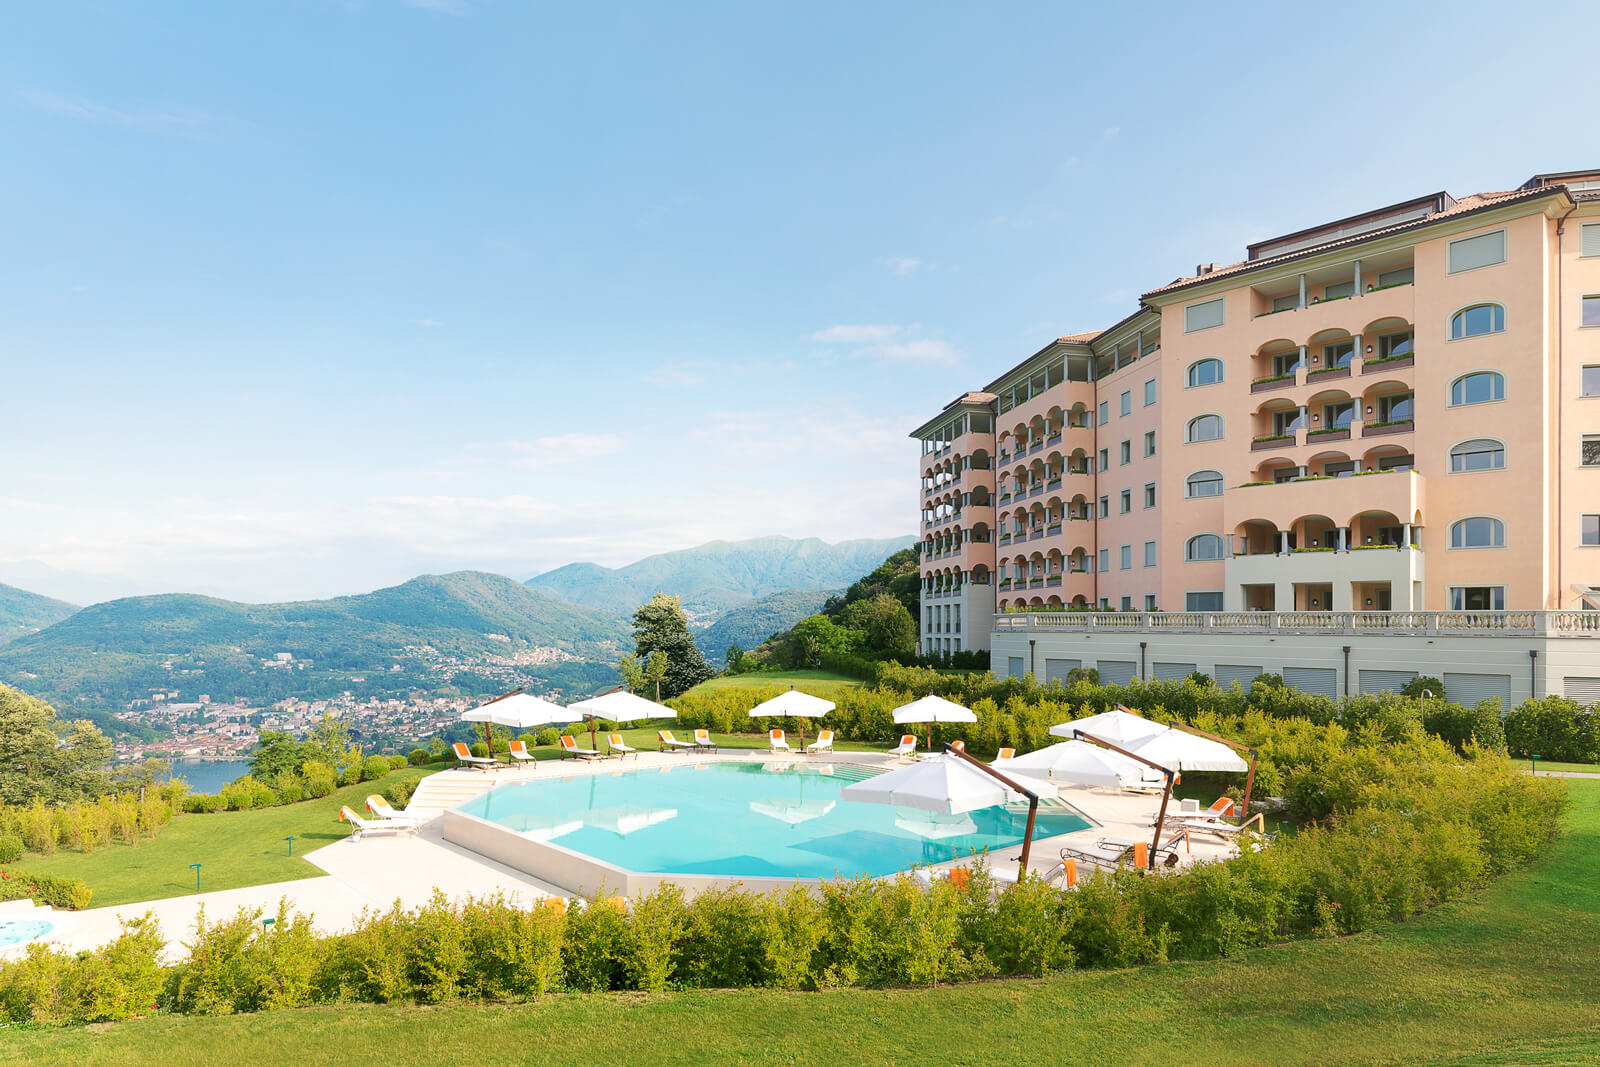 Resort Collina d'Oro in Ticino